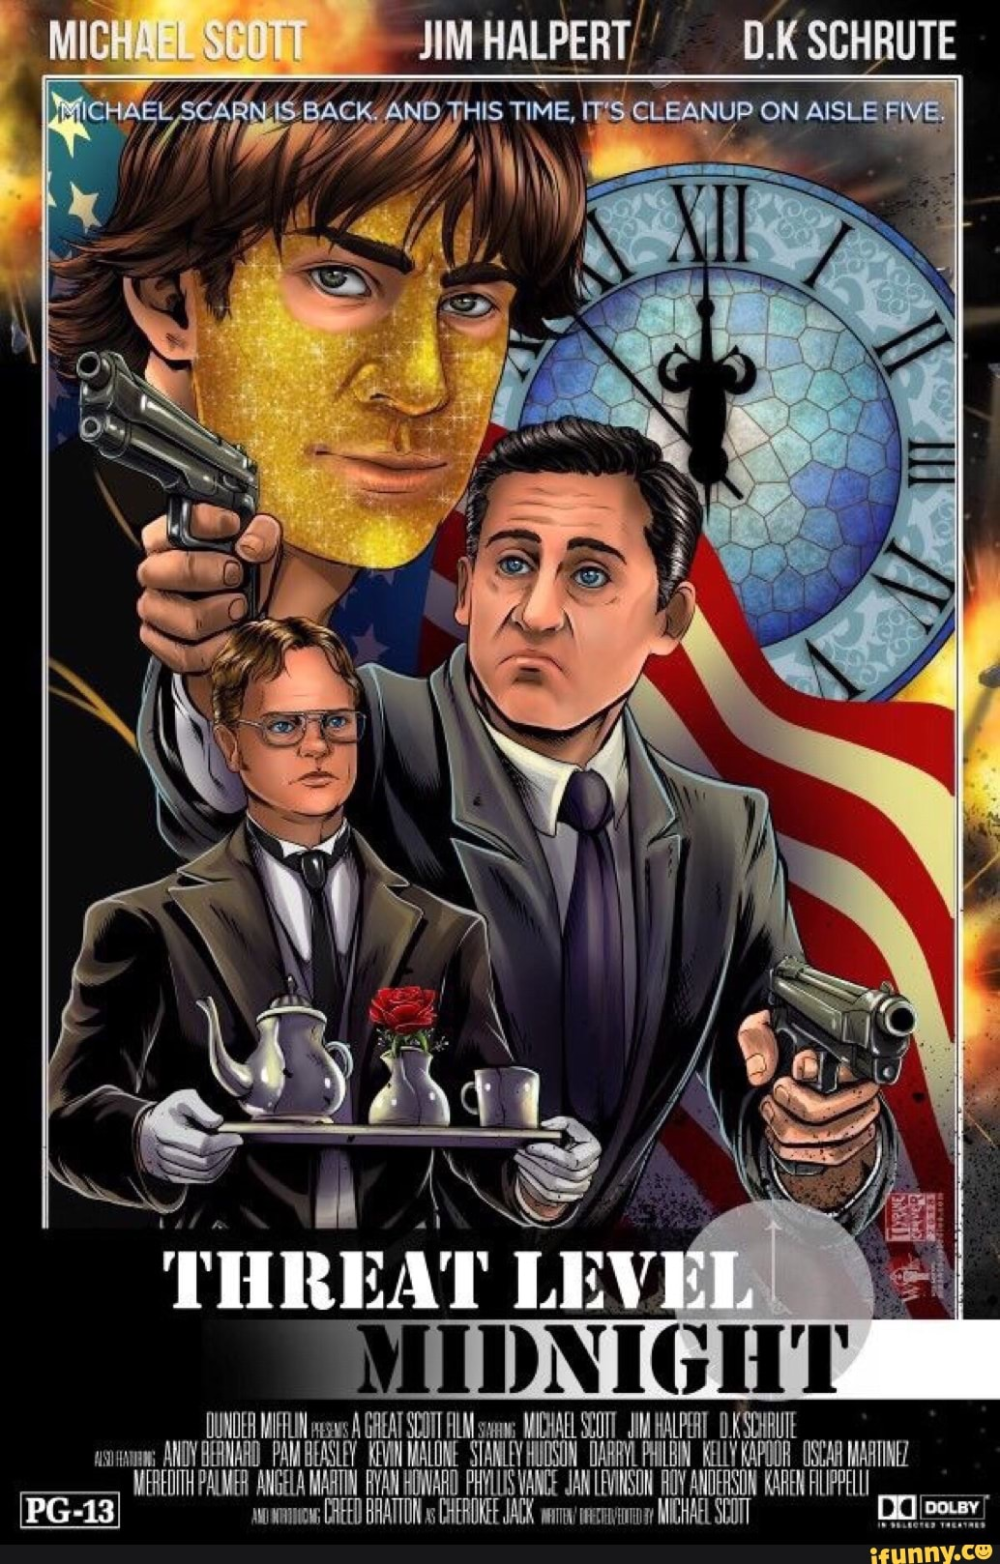 Full Threat Level Midnight Released From The Office With Steve Carell The Office The Office Show Office Humor Office Tv